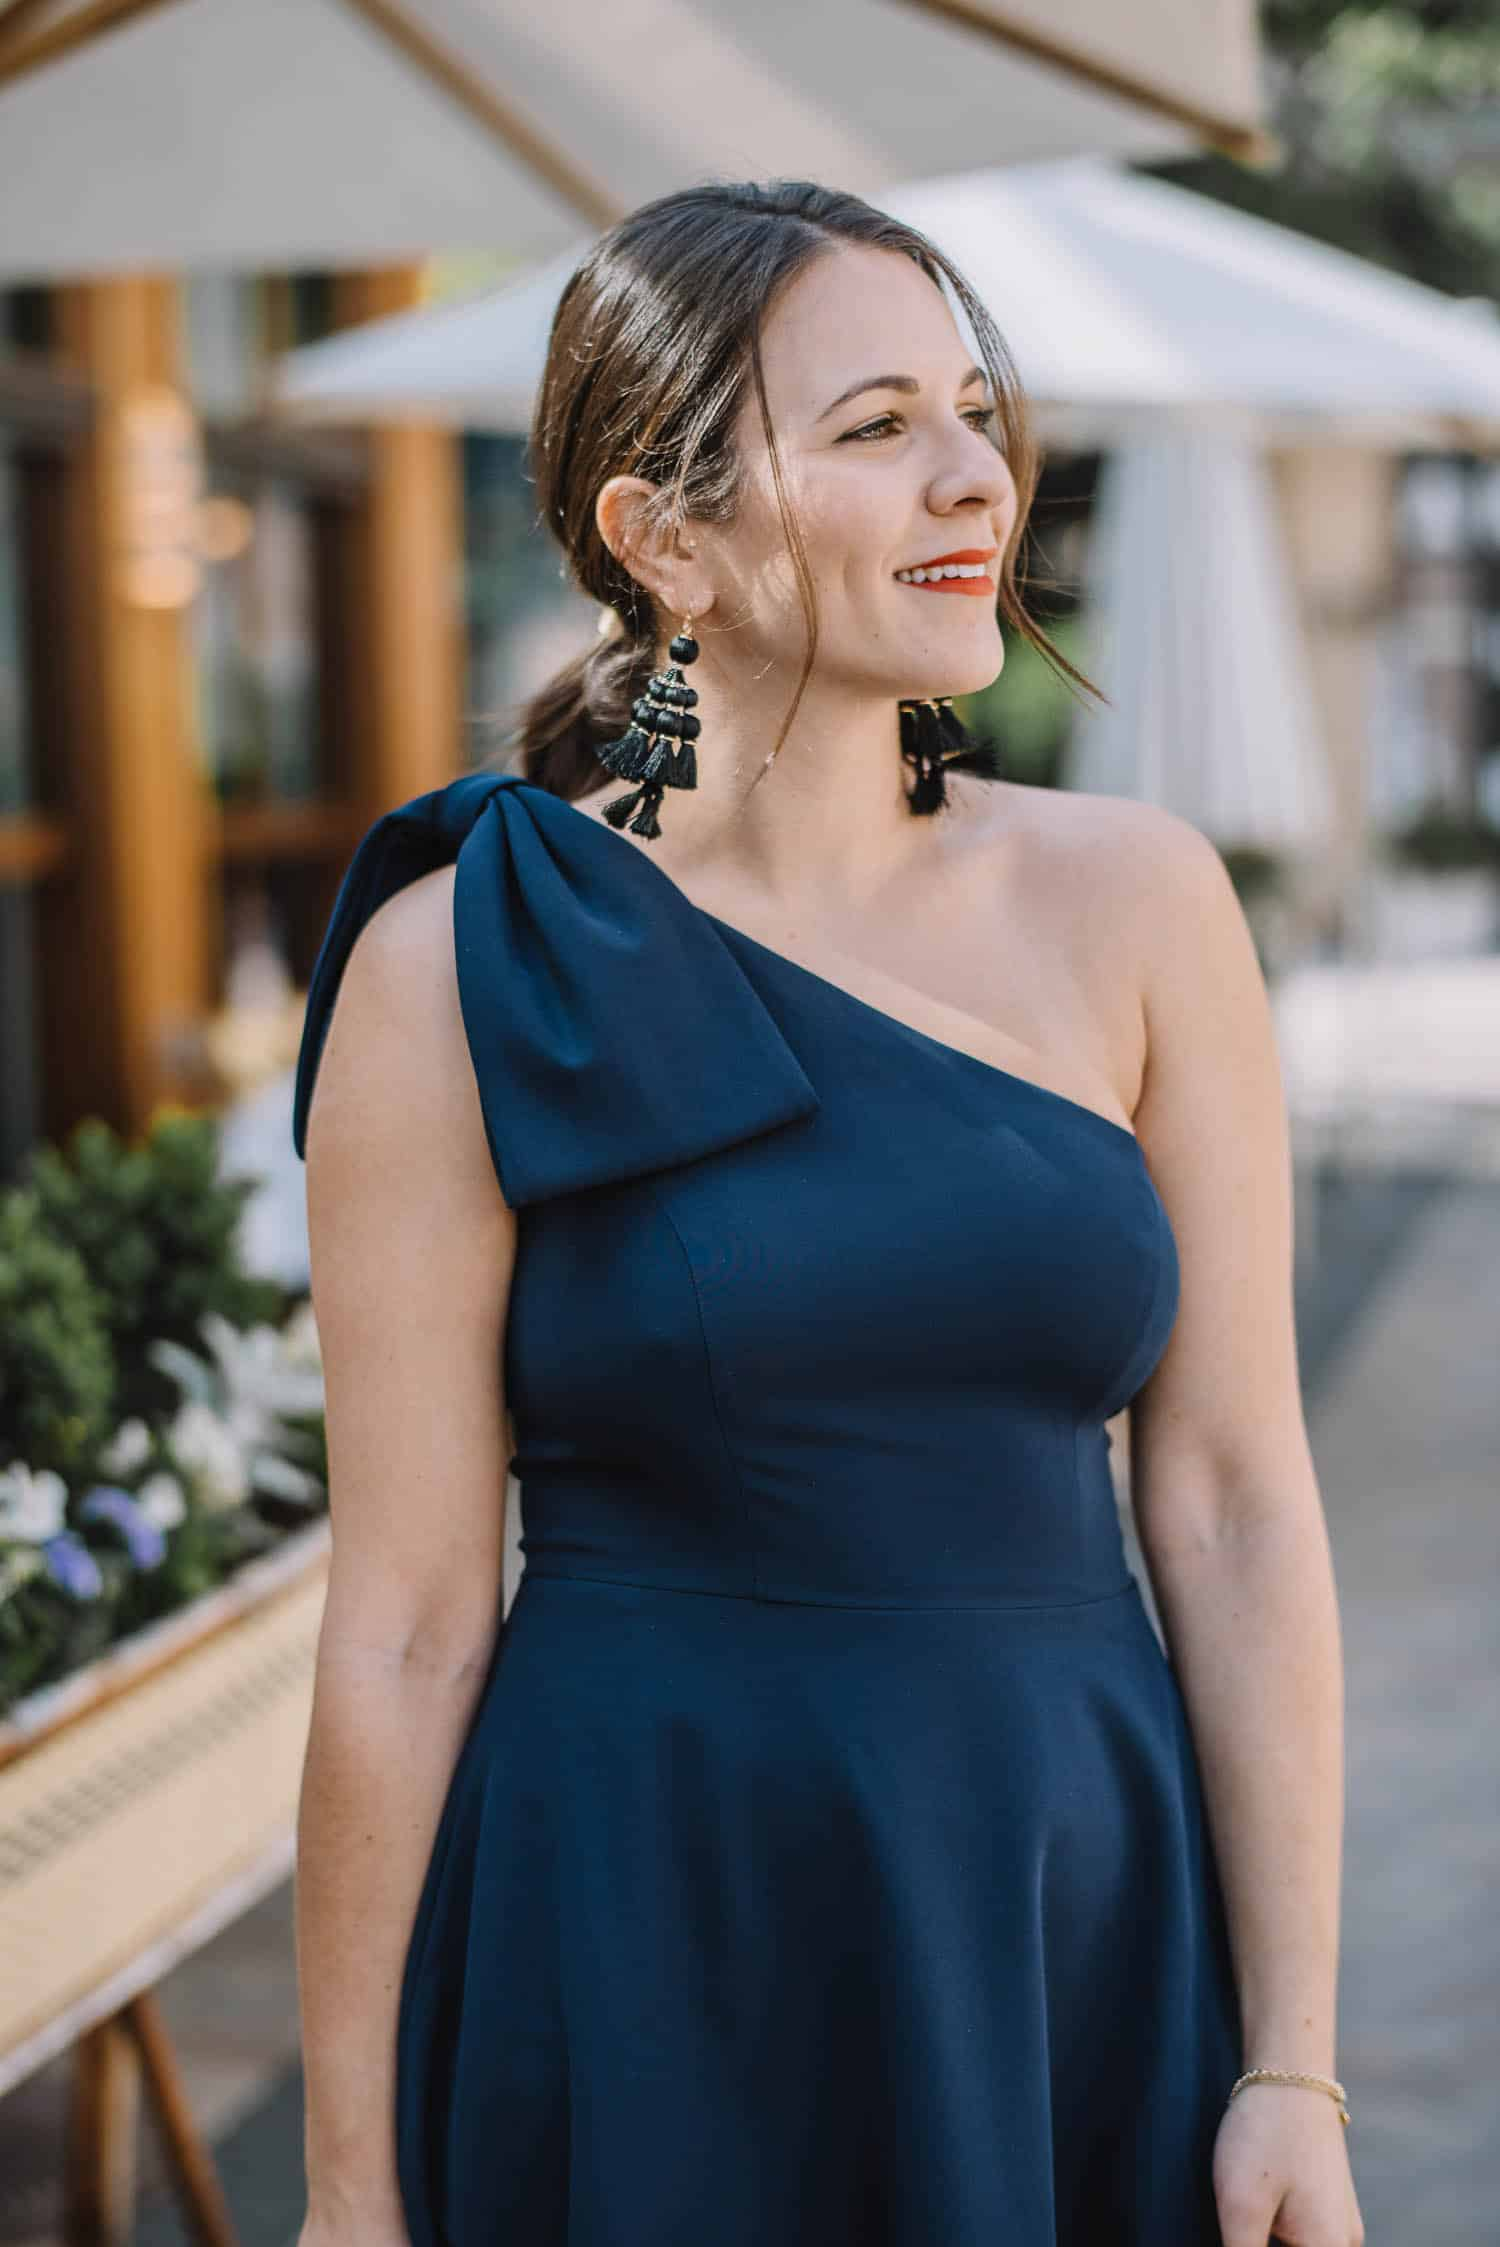 52a91d1706 The Perfect Dress For A Semi-Formal Wedding - My Style Vita